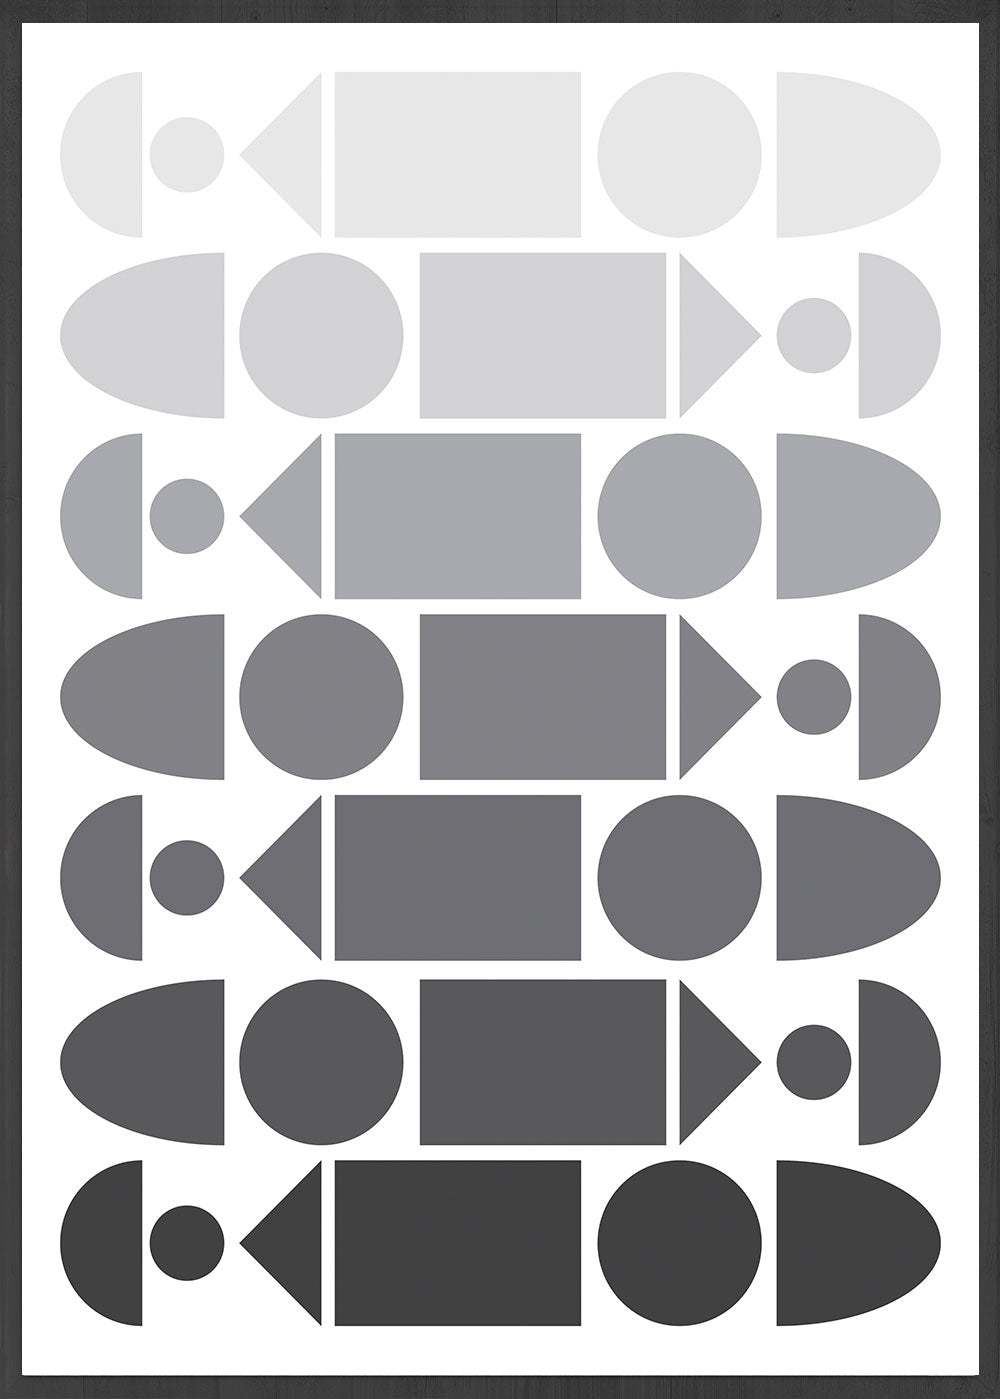 Monochrome Progression Black and White Pattern Design in frame